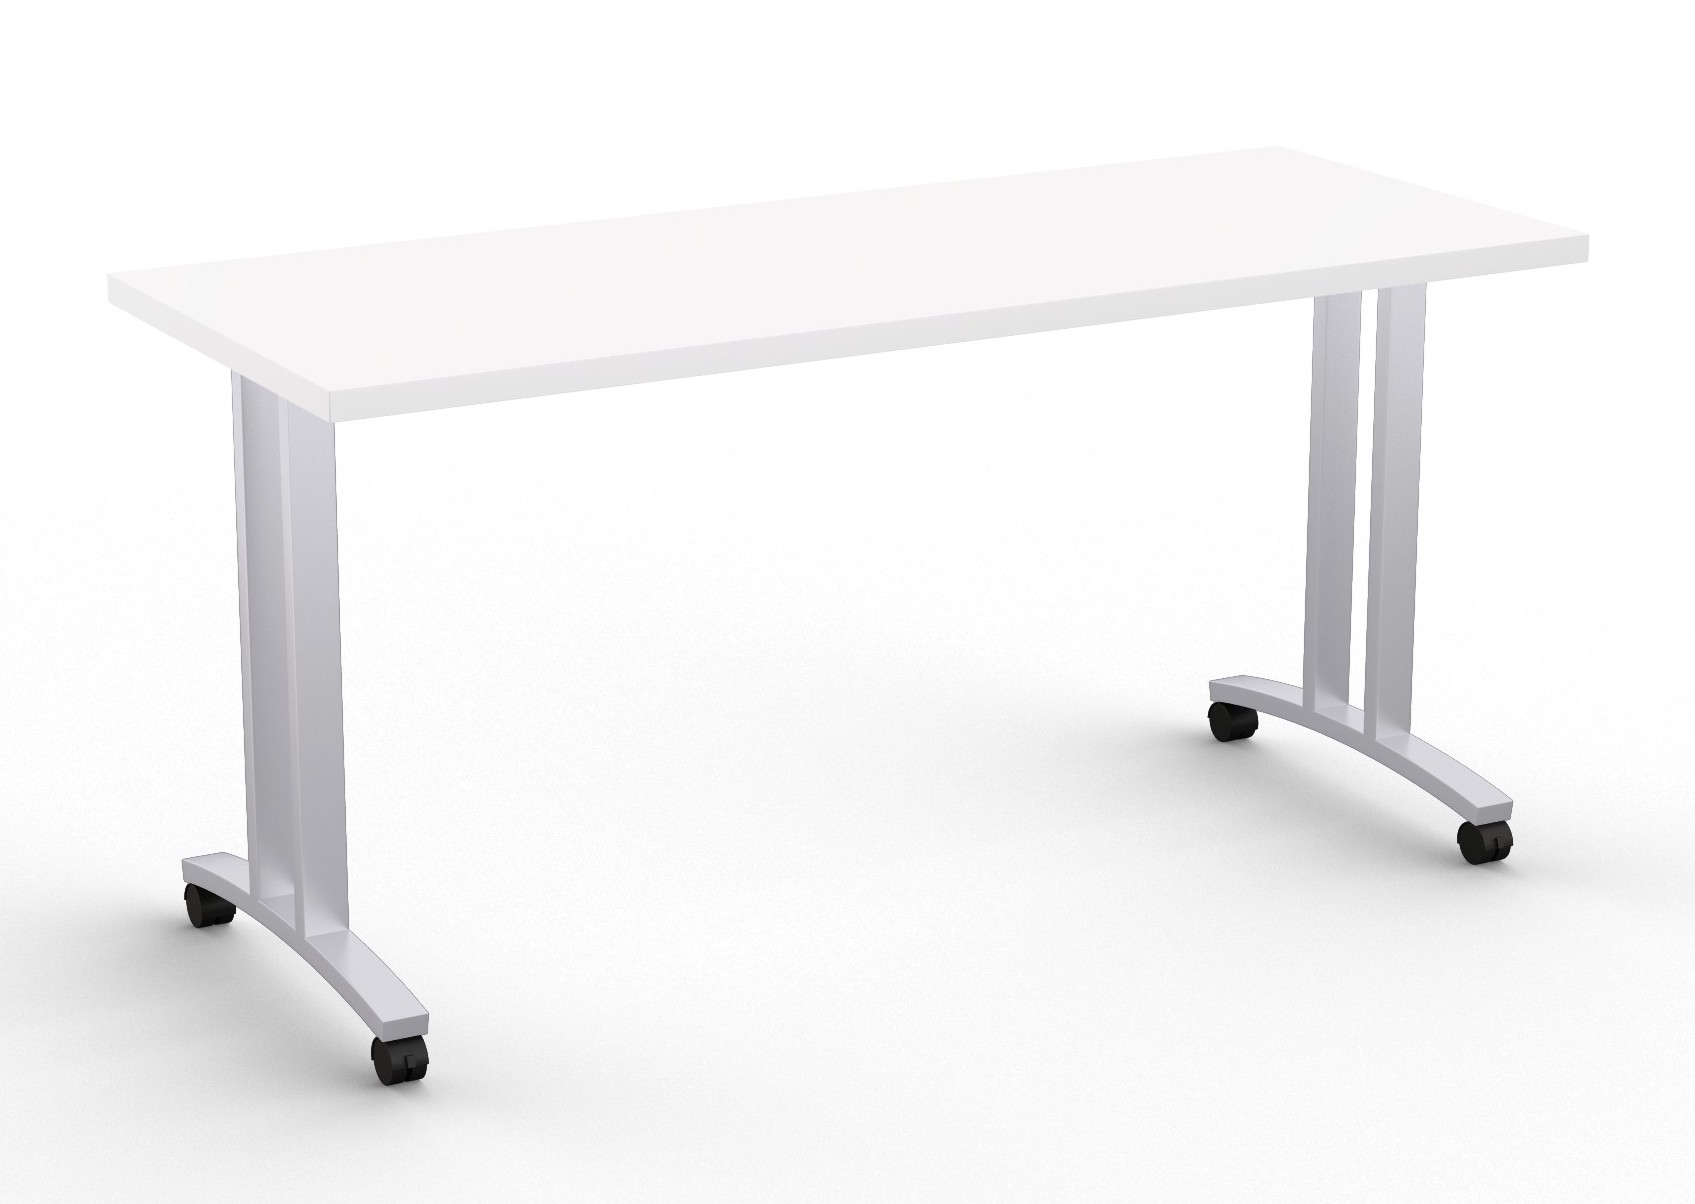 special-t structure t leg training table in white